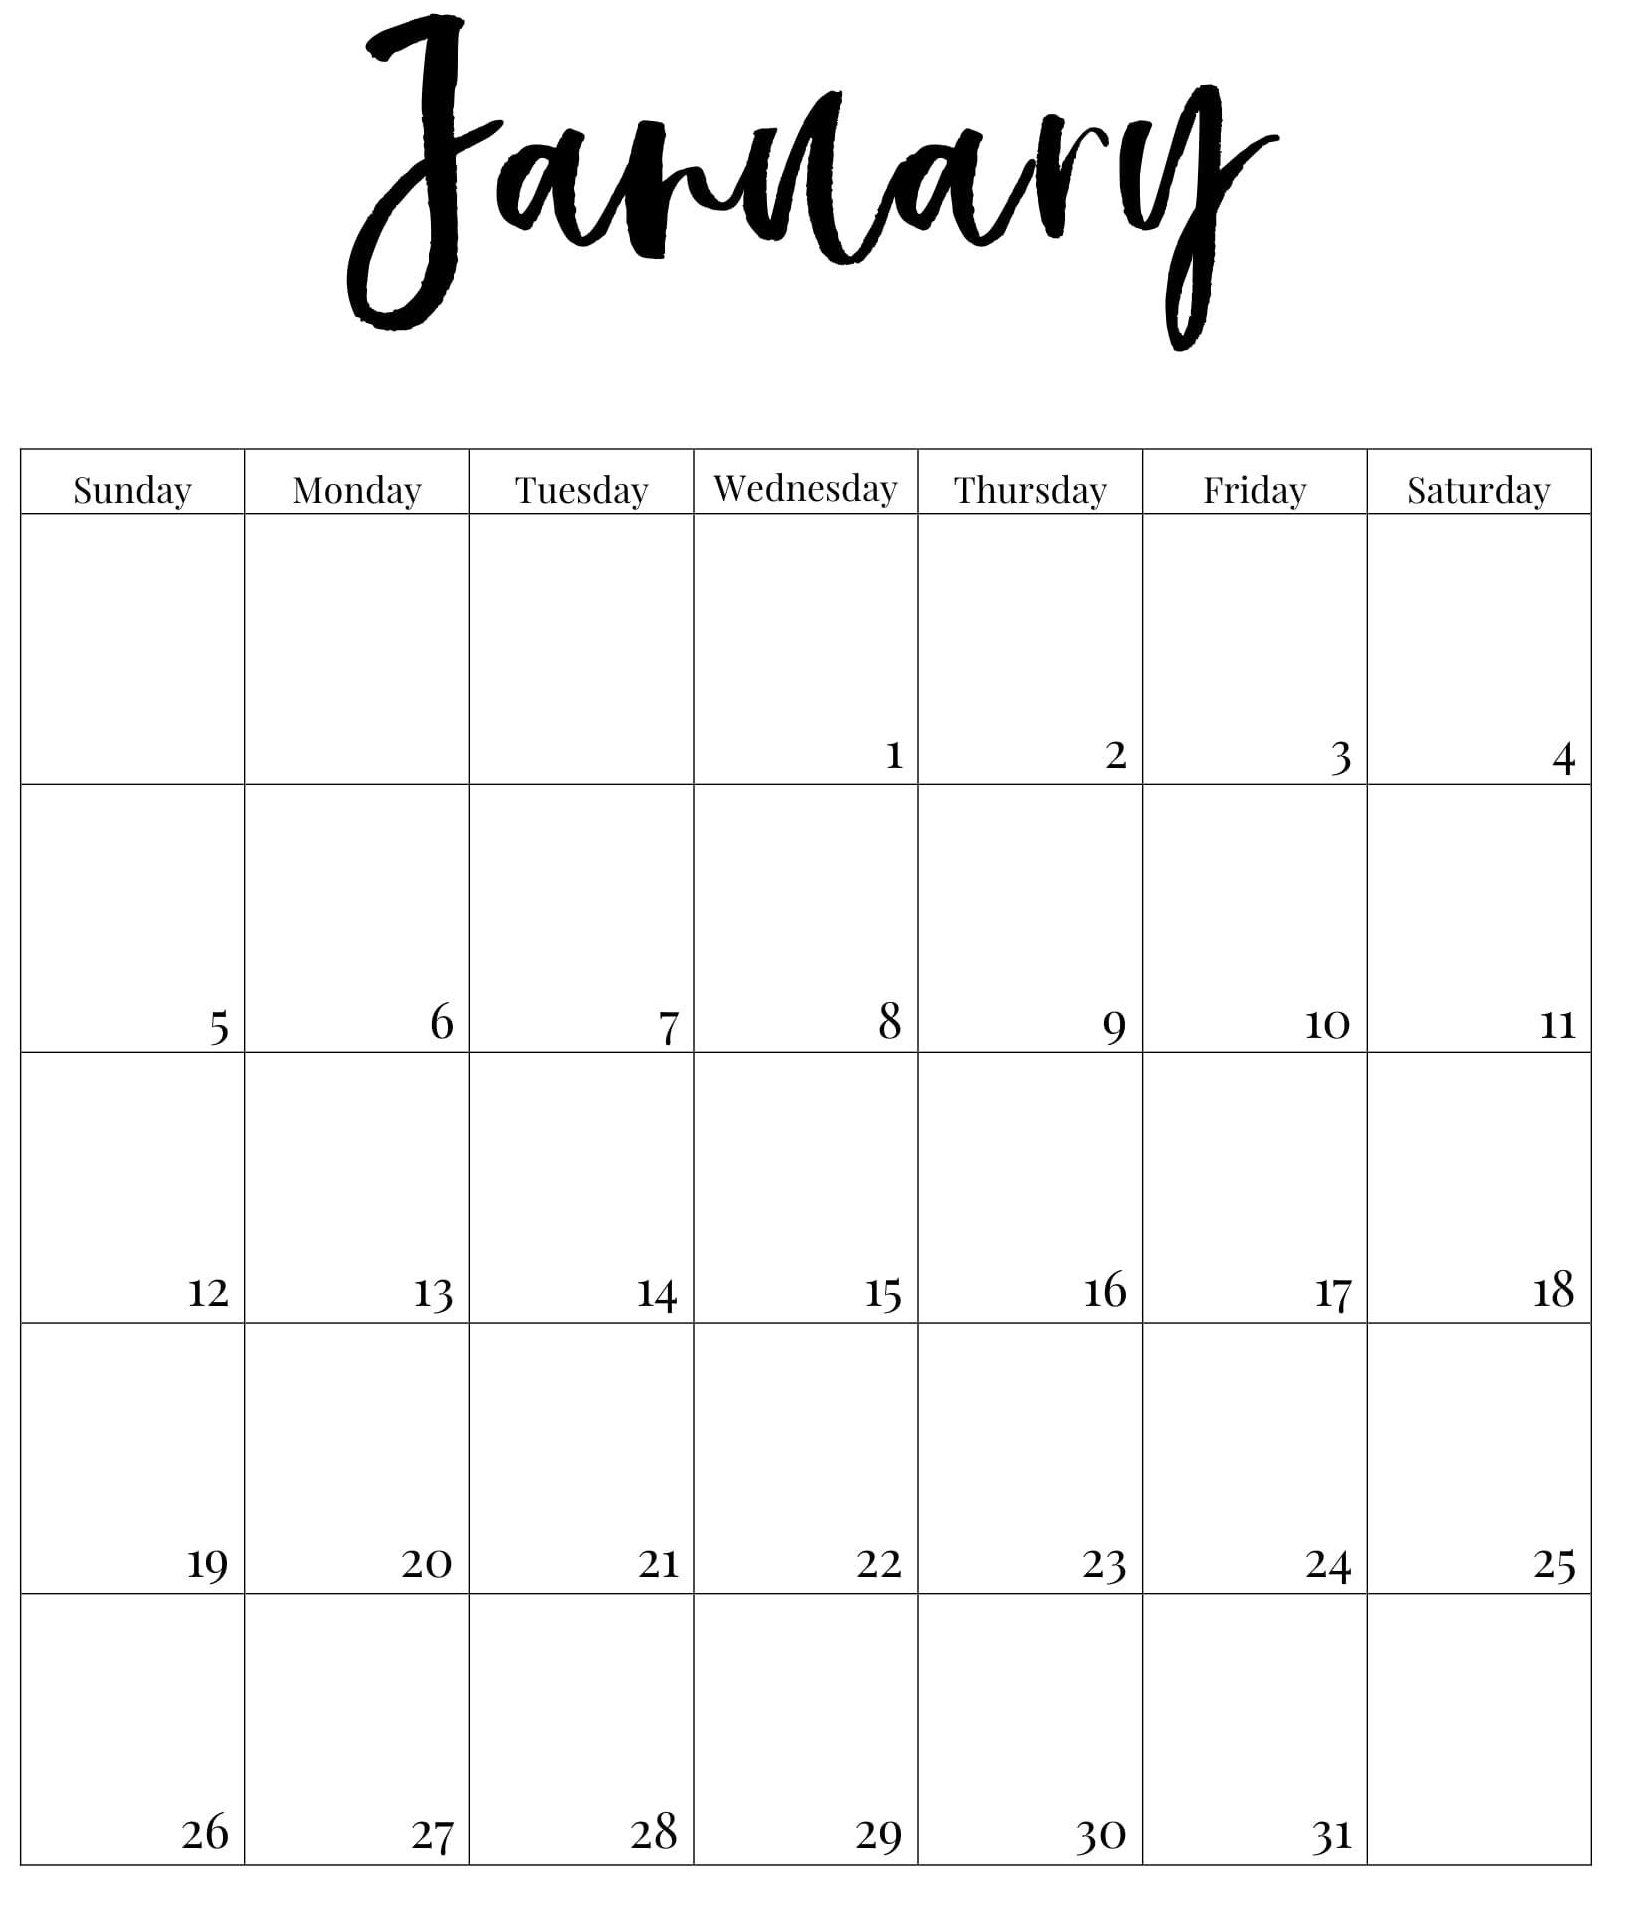 January 2020 Calendar US With Holidays